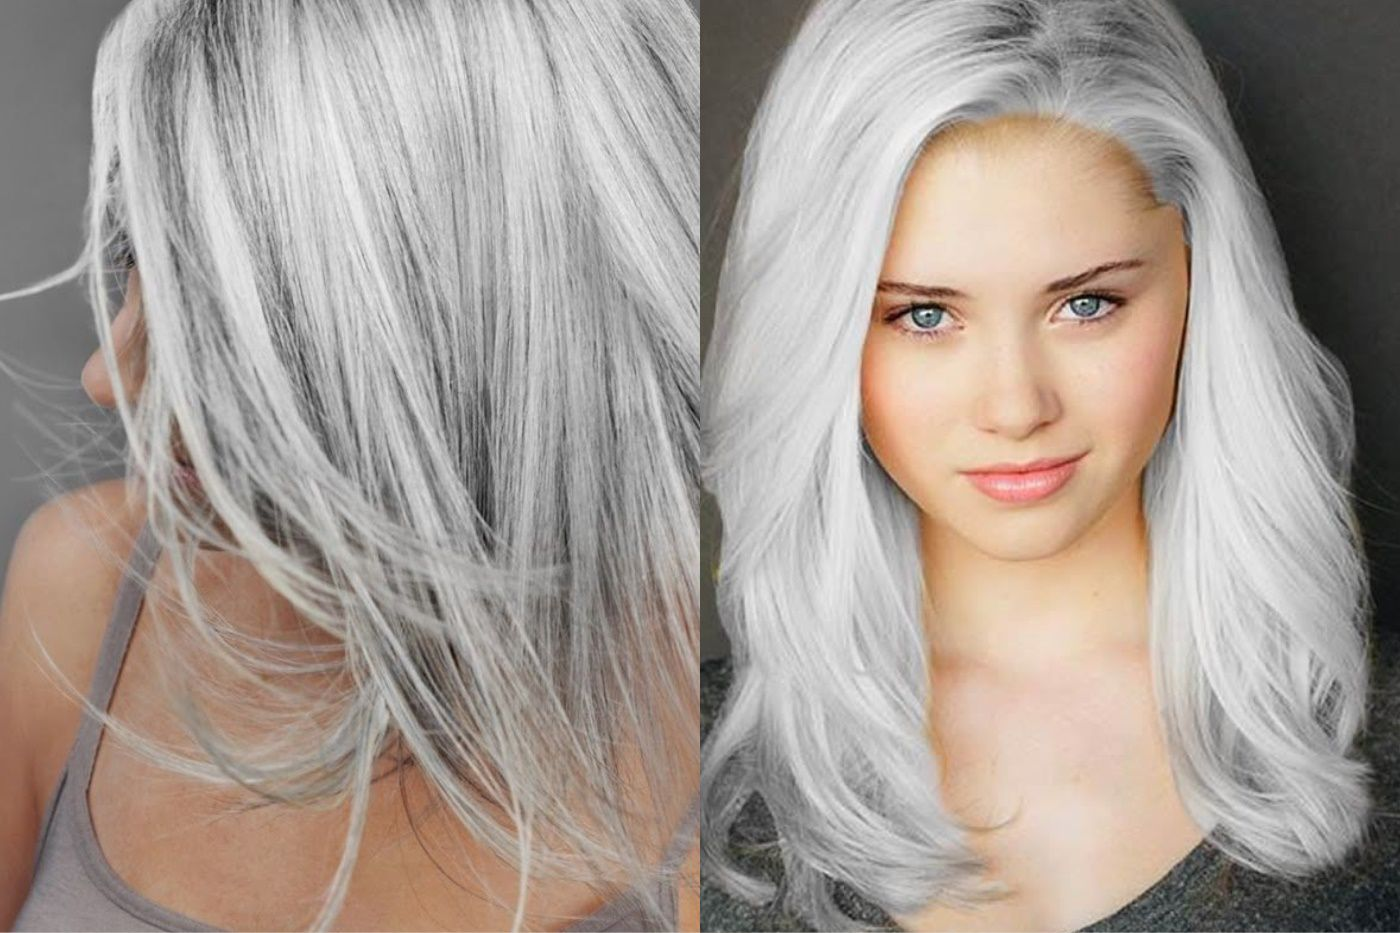 Fashionable Hair Color and New Dyeing In 2021 - Is Beauty Tips - Is Beauty Tips